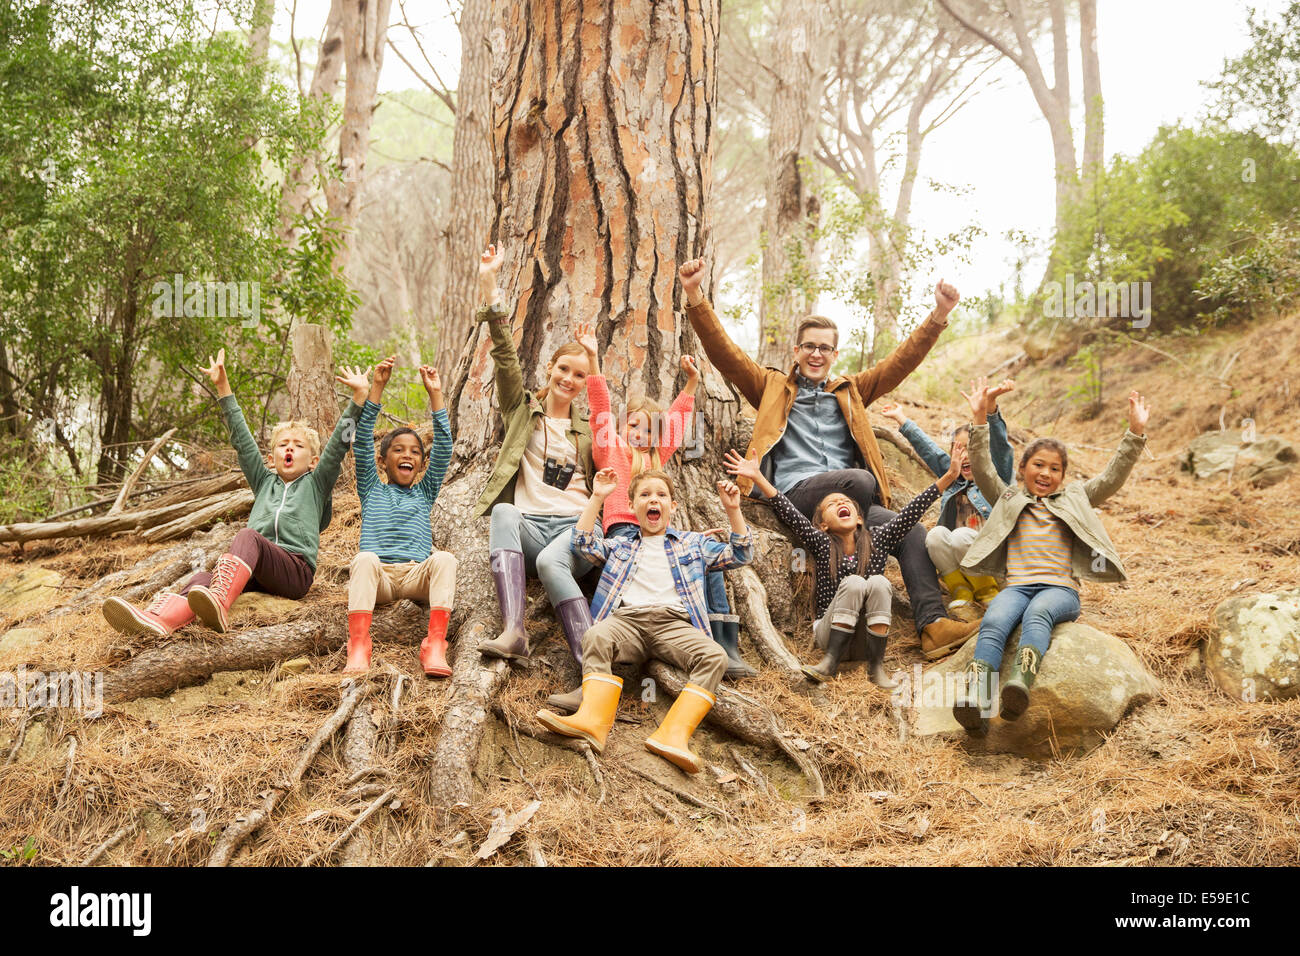 Students and teachers cheering in forest - Stock Image